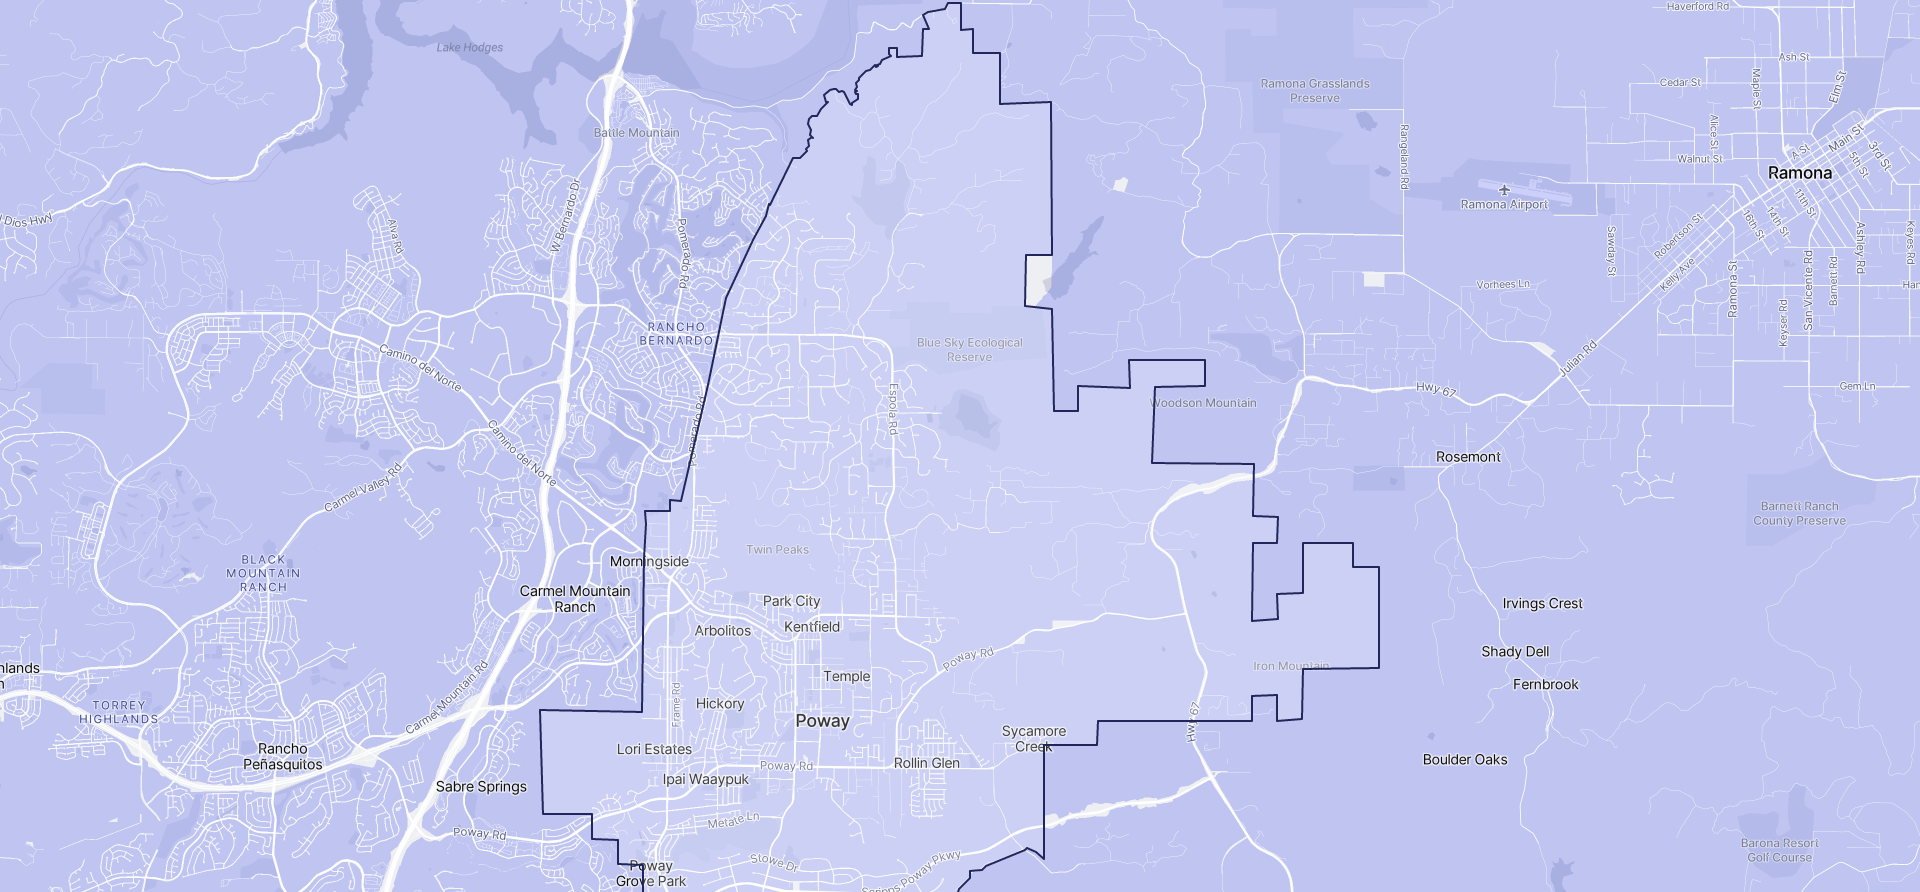 Image of Poway boundaries on a map.